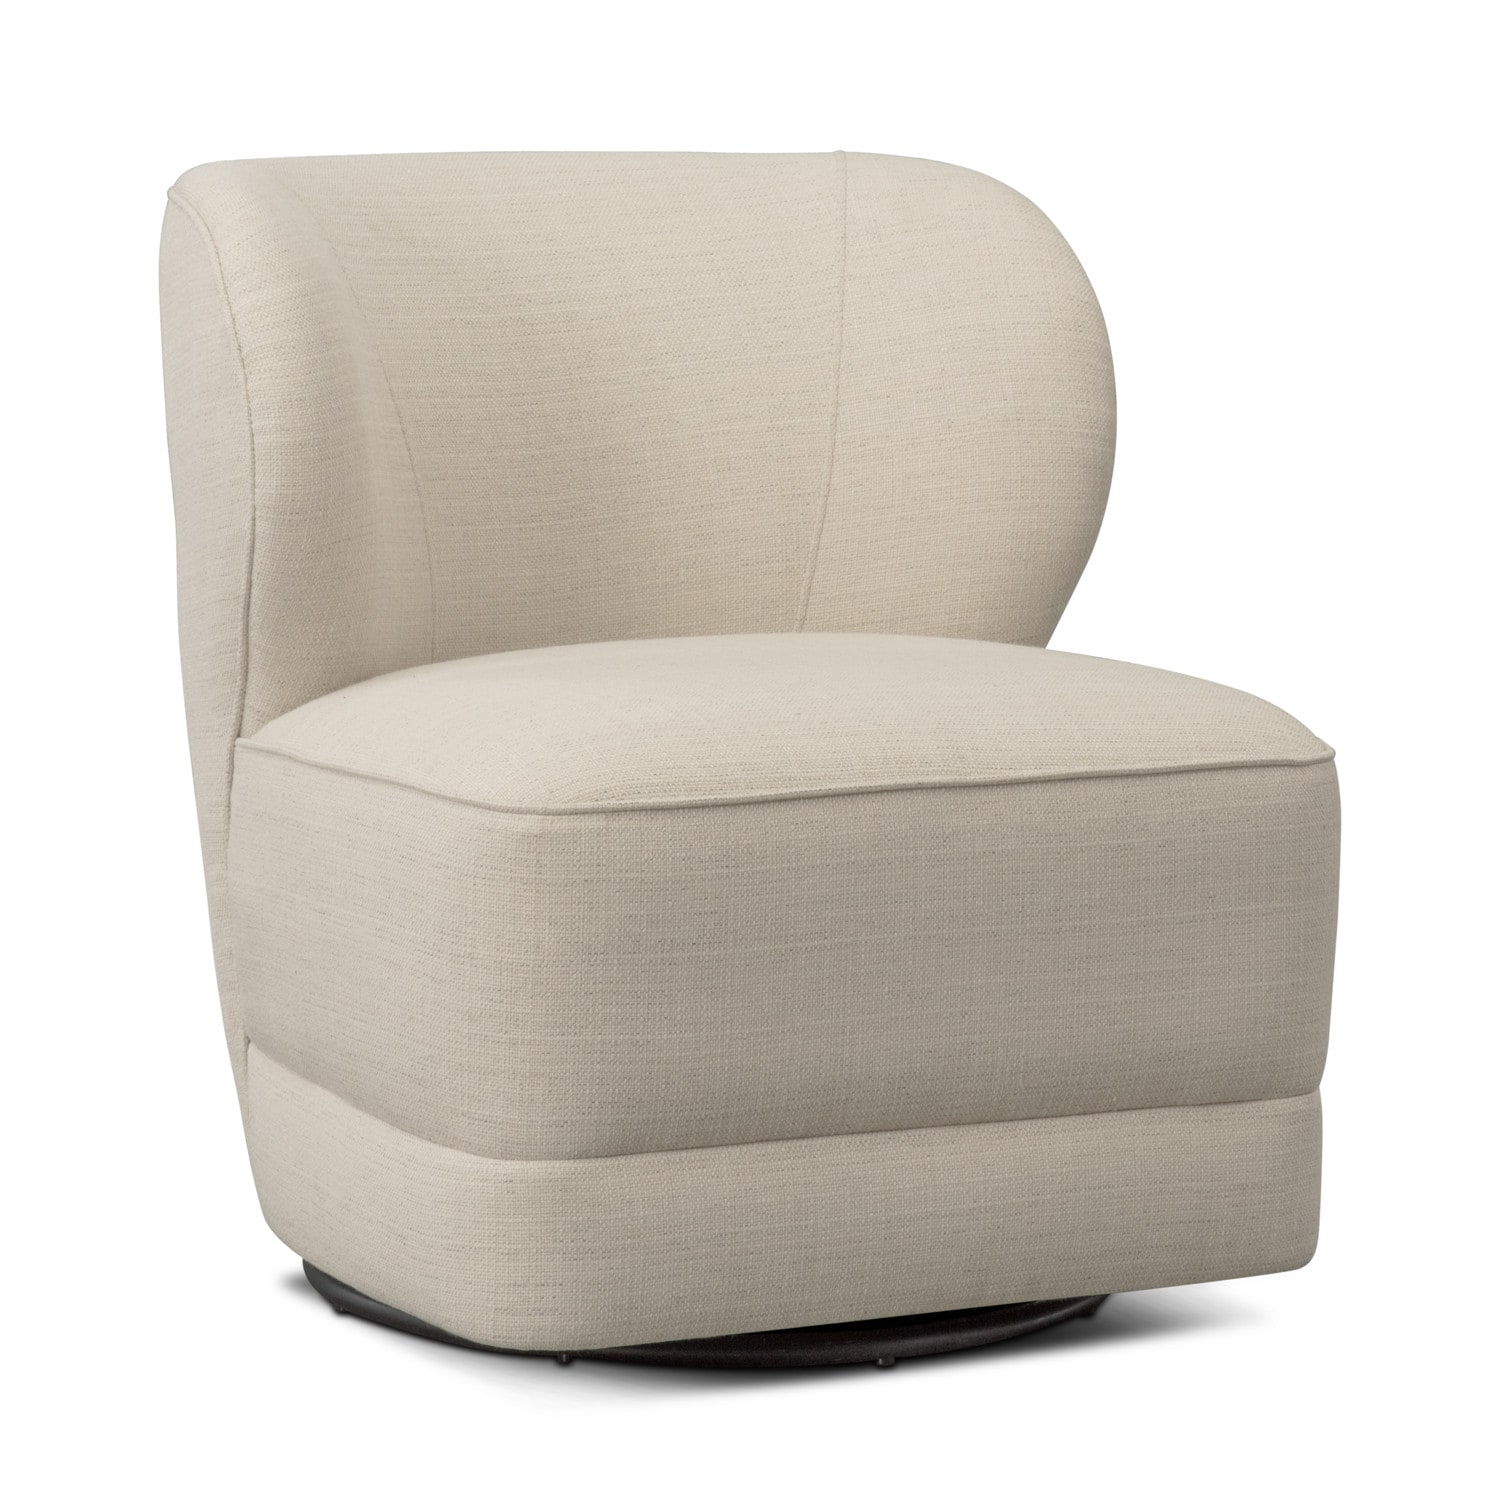 swivel chair value city squeaky office lounge ivory furniture and